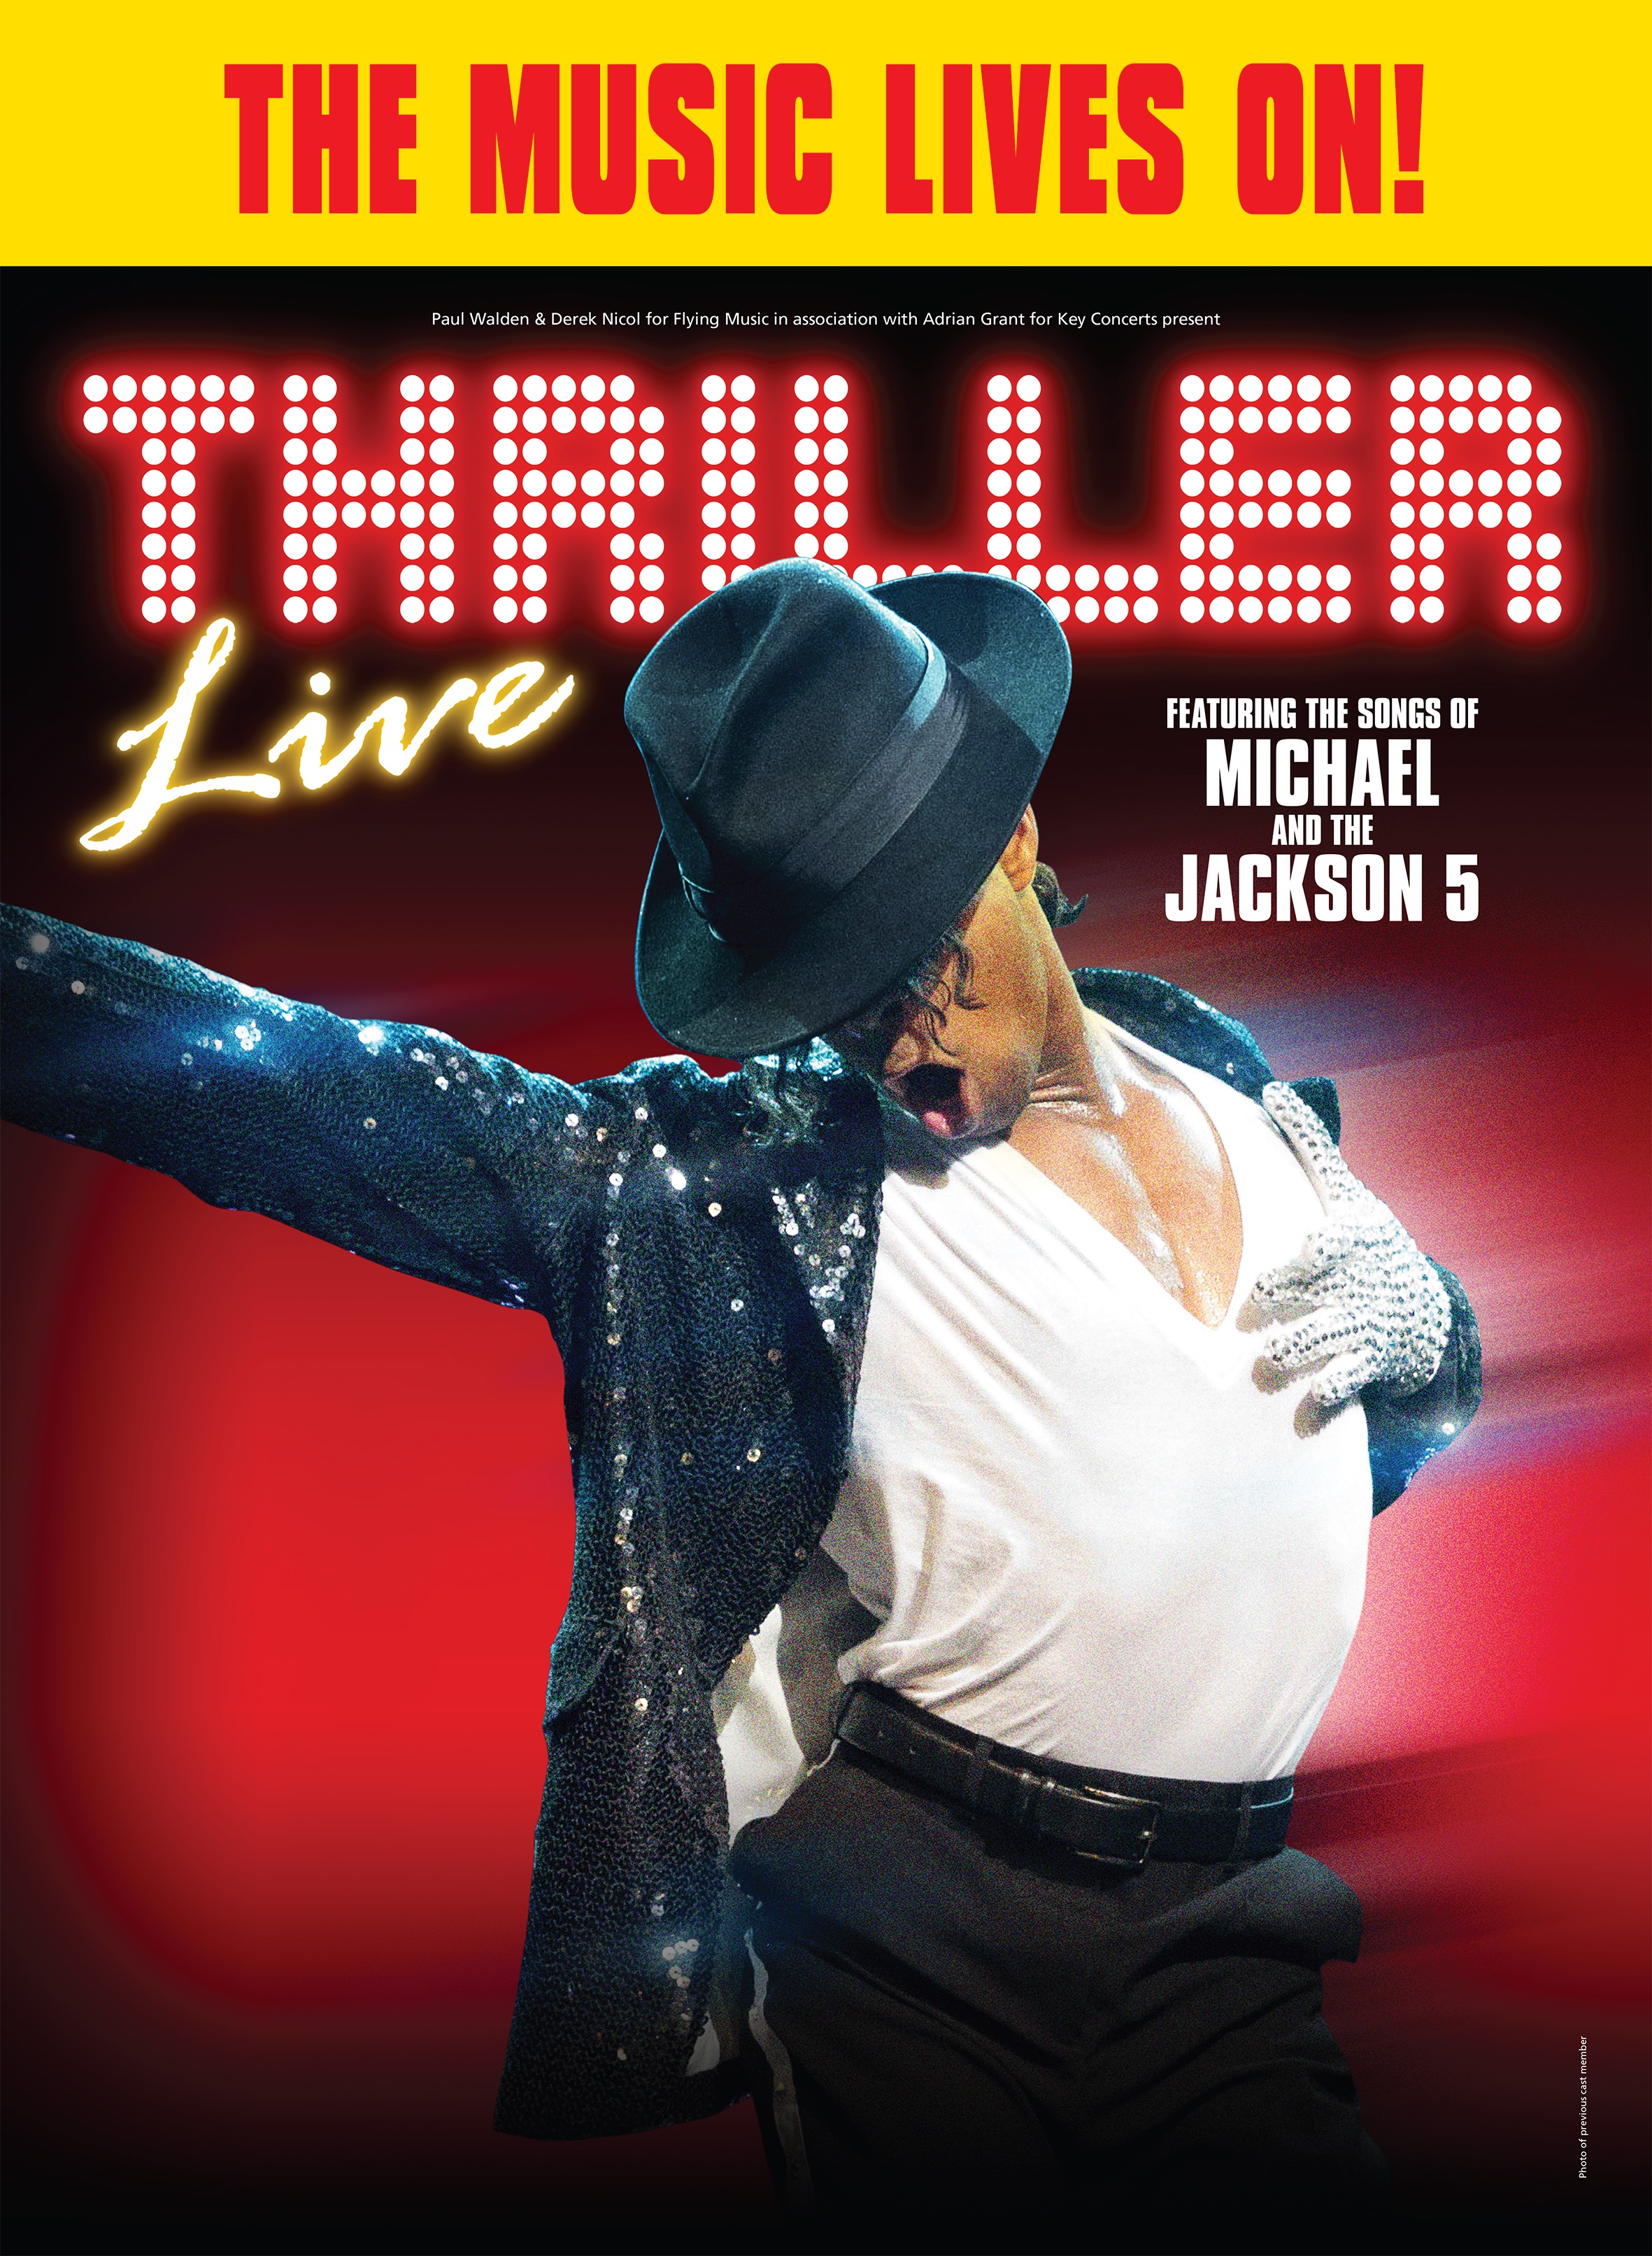 Thriller Live Tour